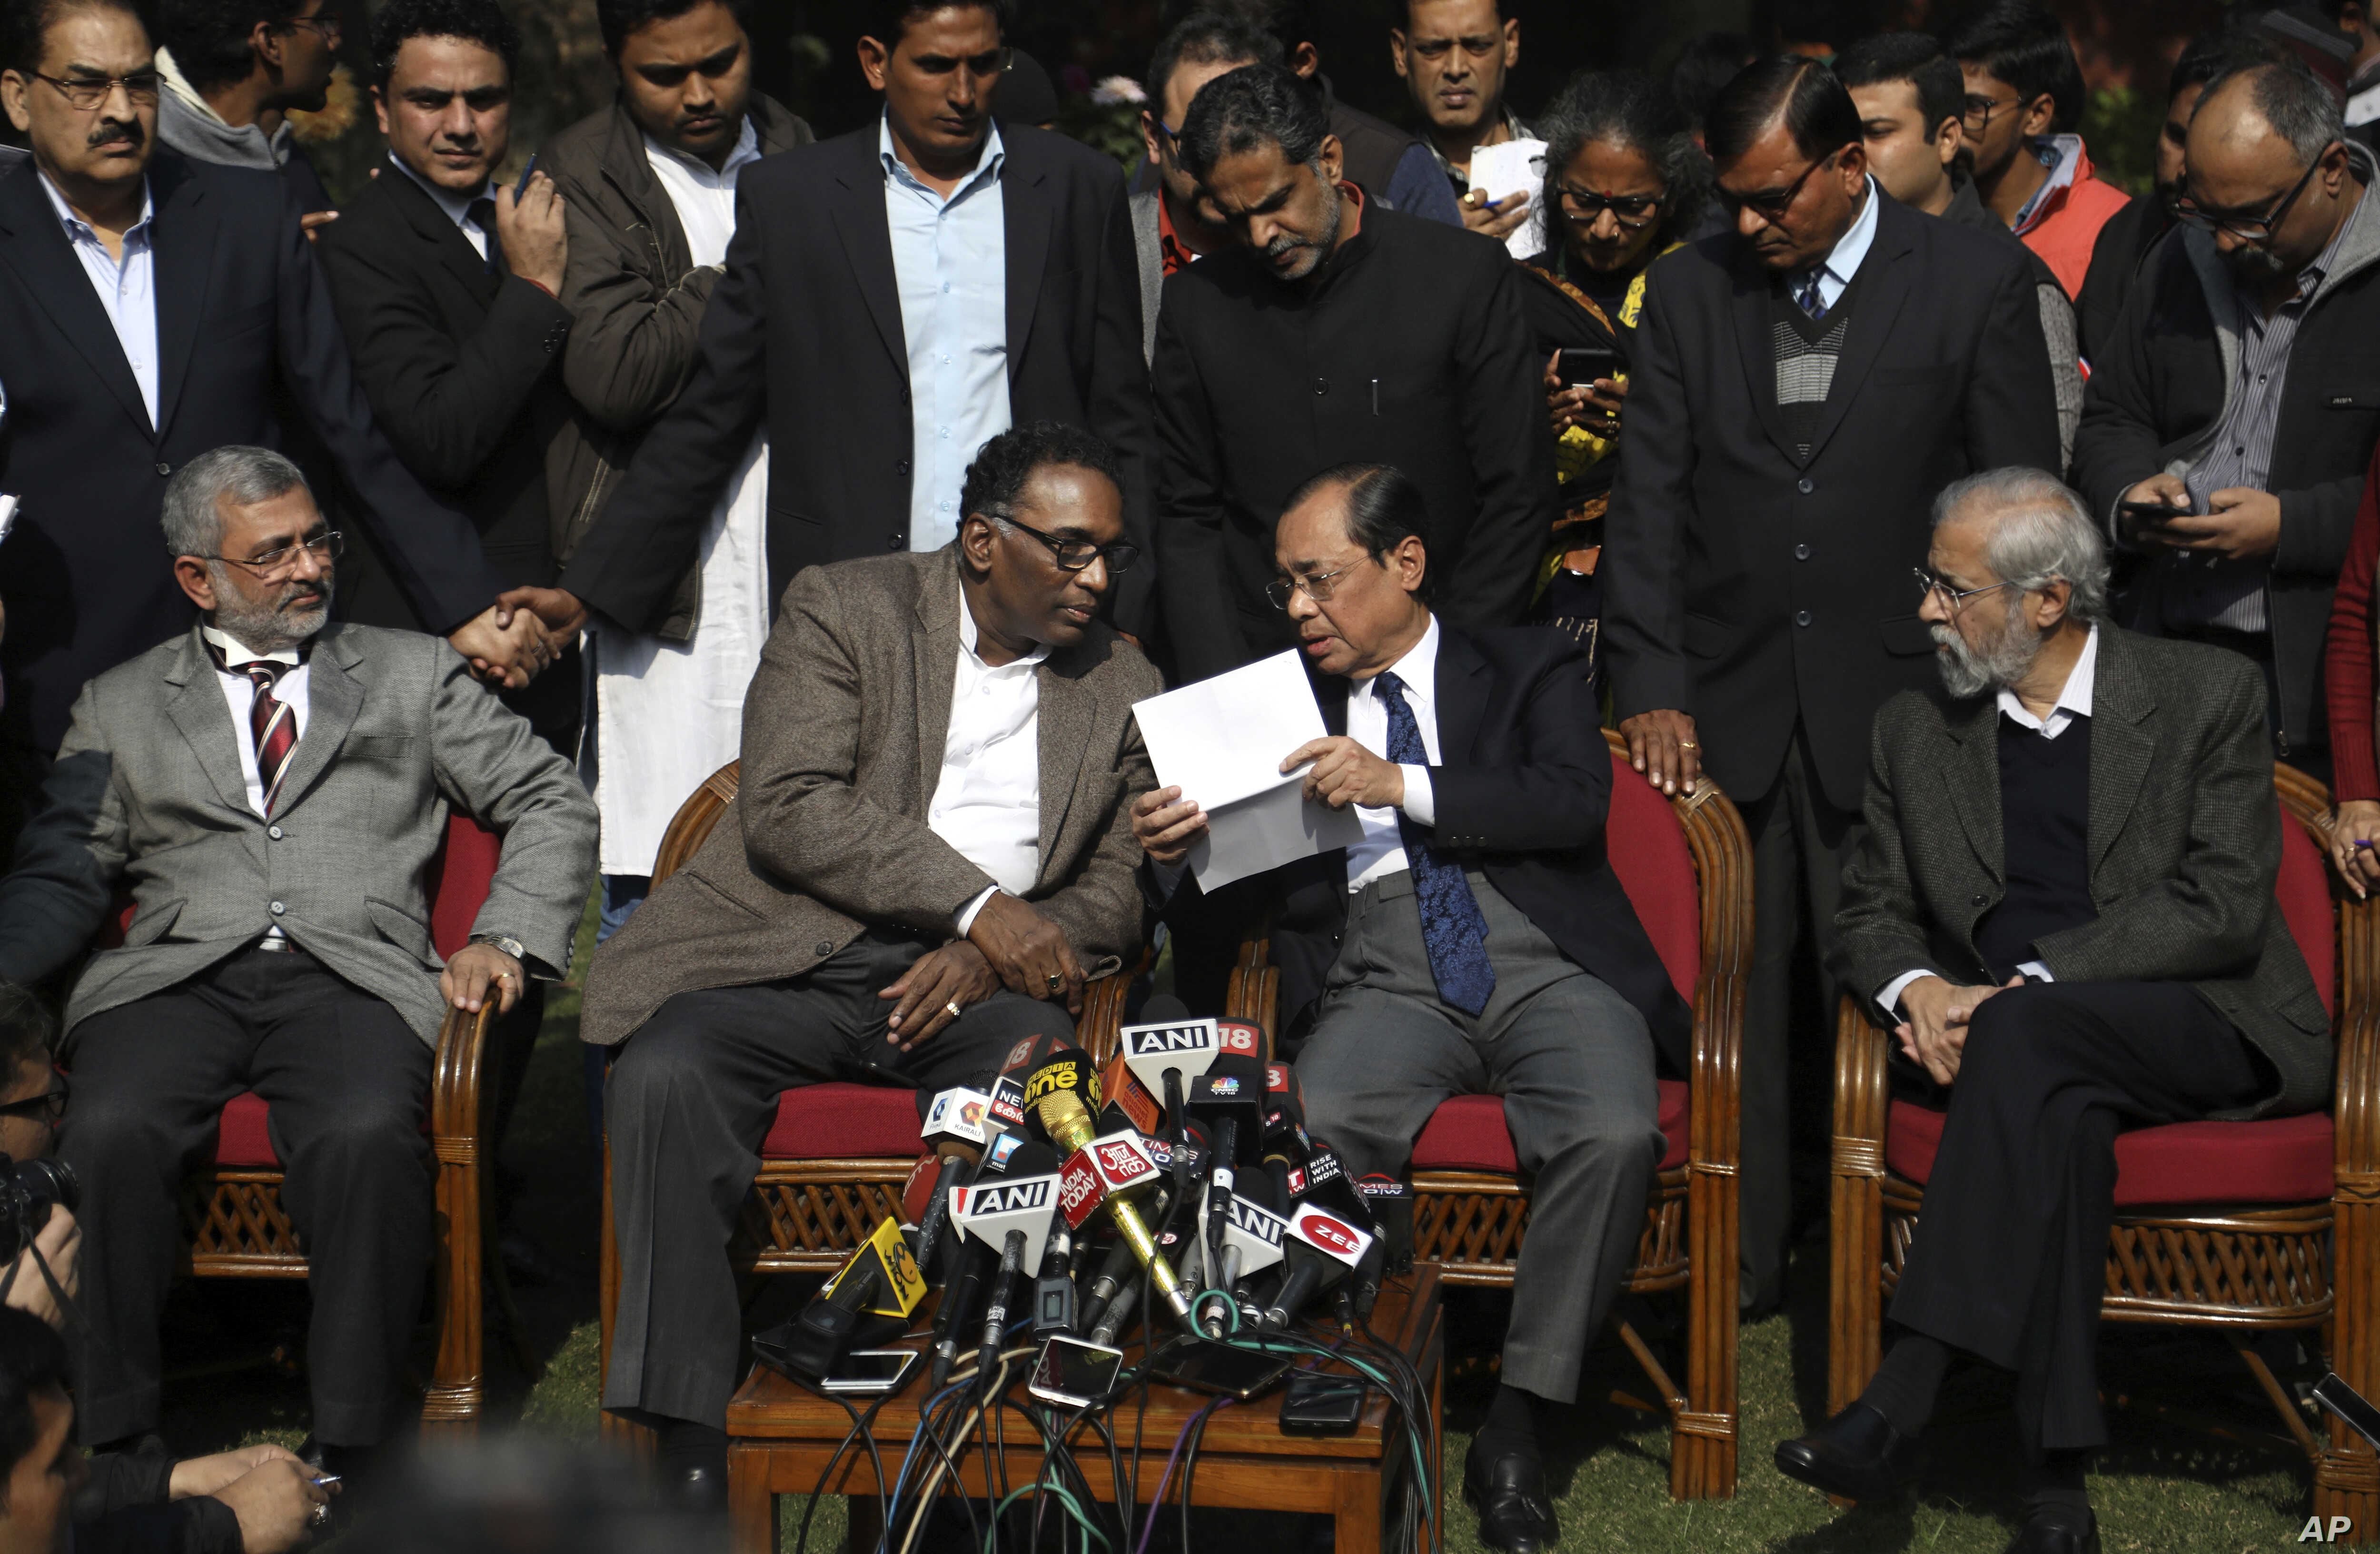 India's Top Court Faces Credibility Crisis   Voice of America - English